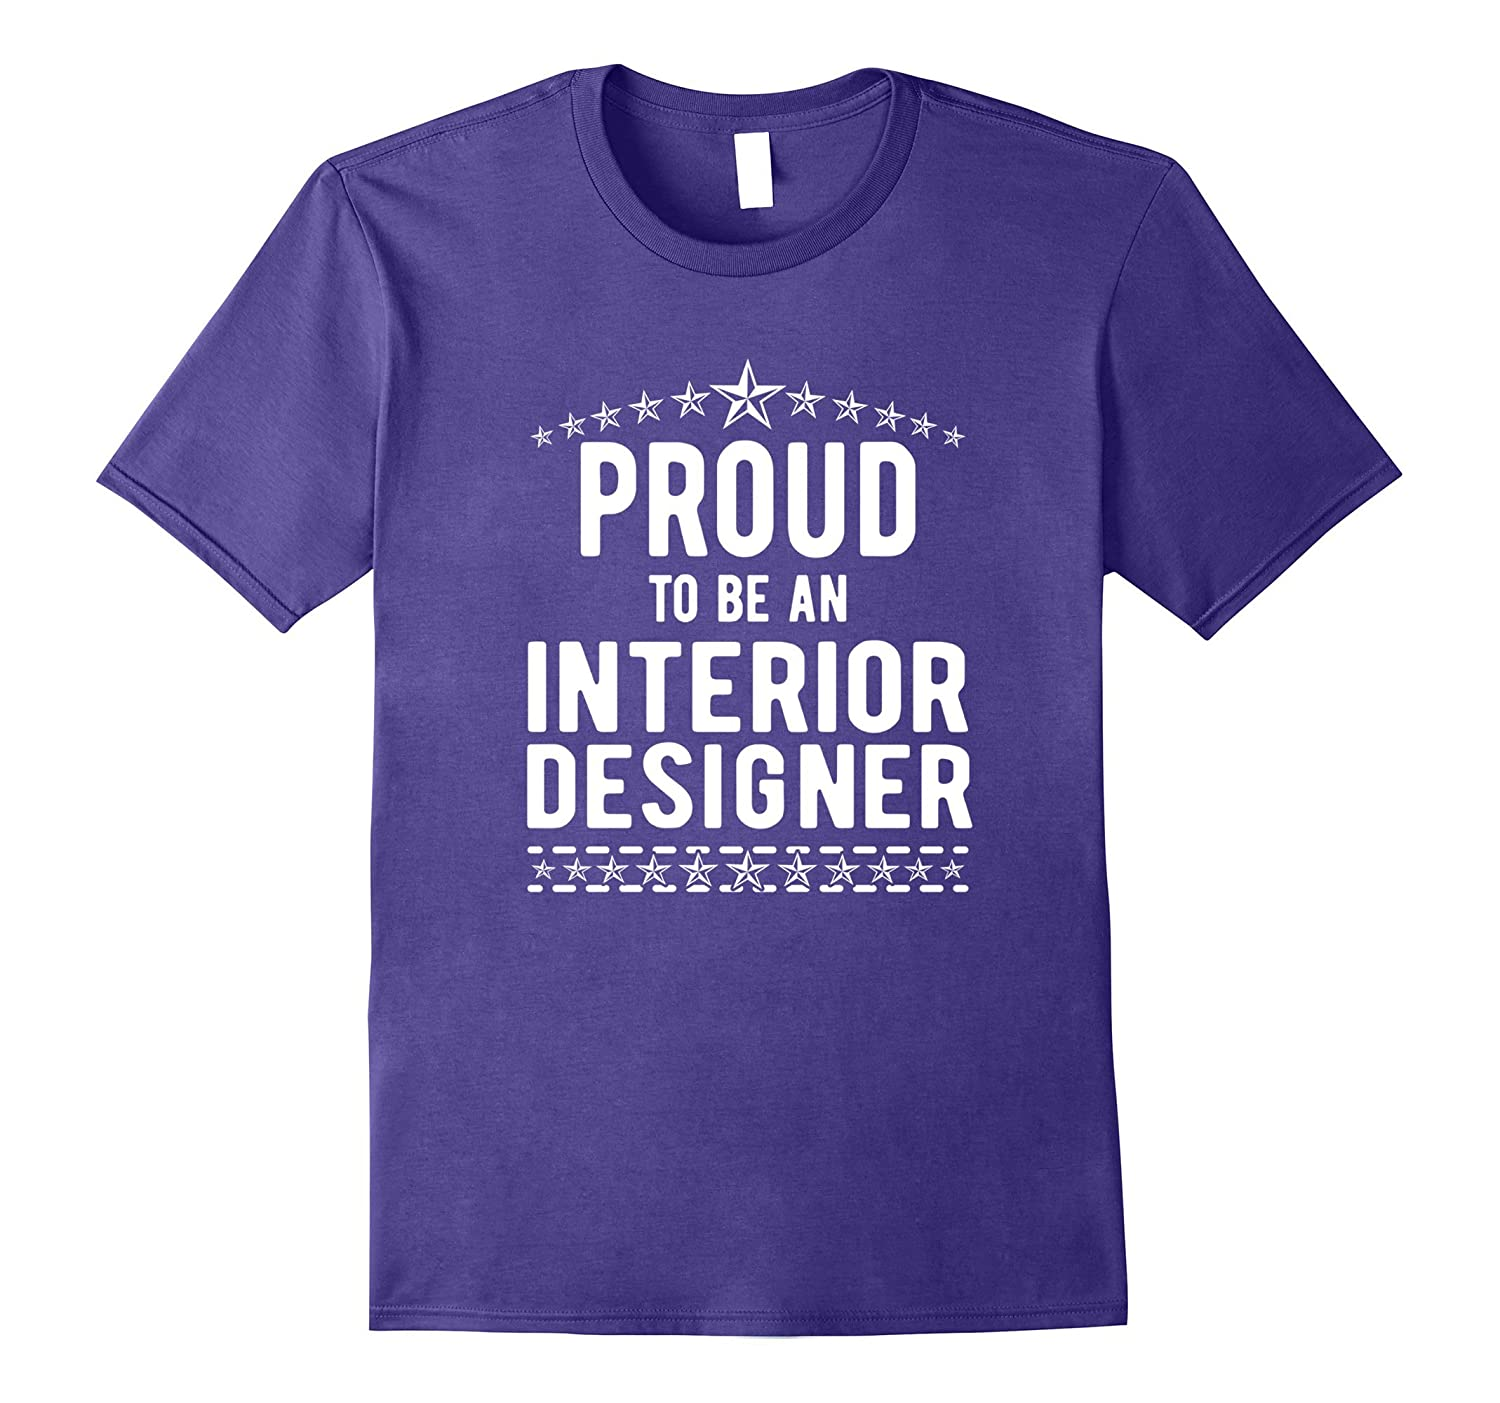 The Official Proud to Be an Interior Designer T-Shirt-PL